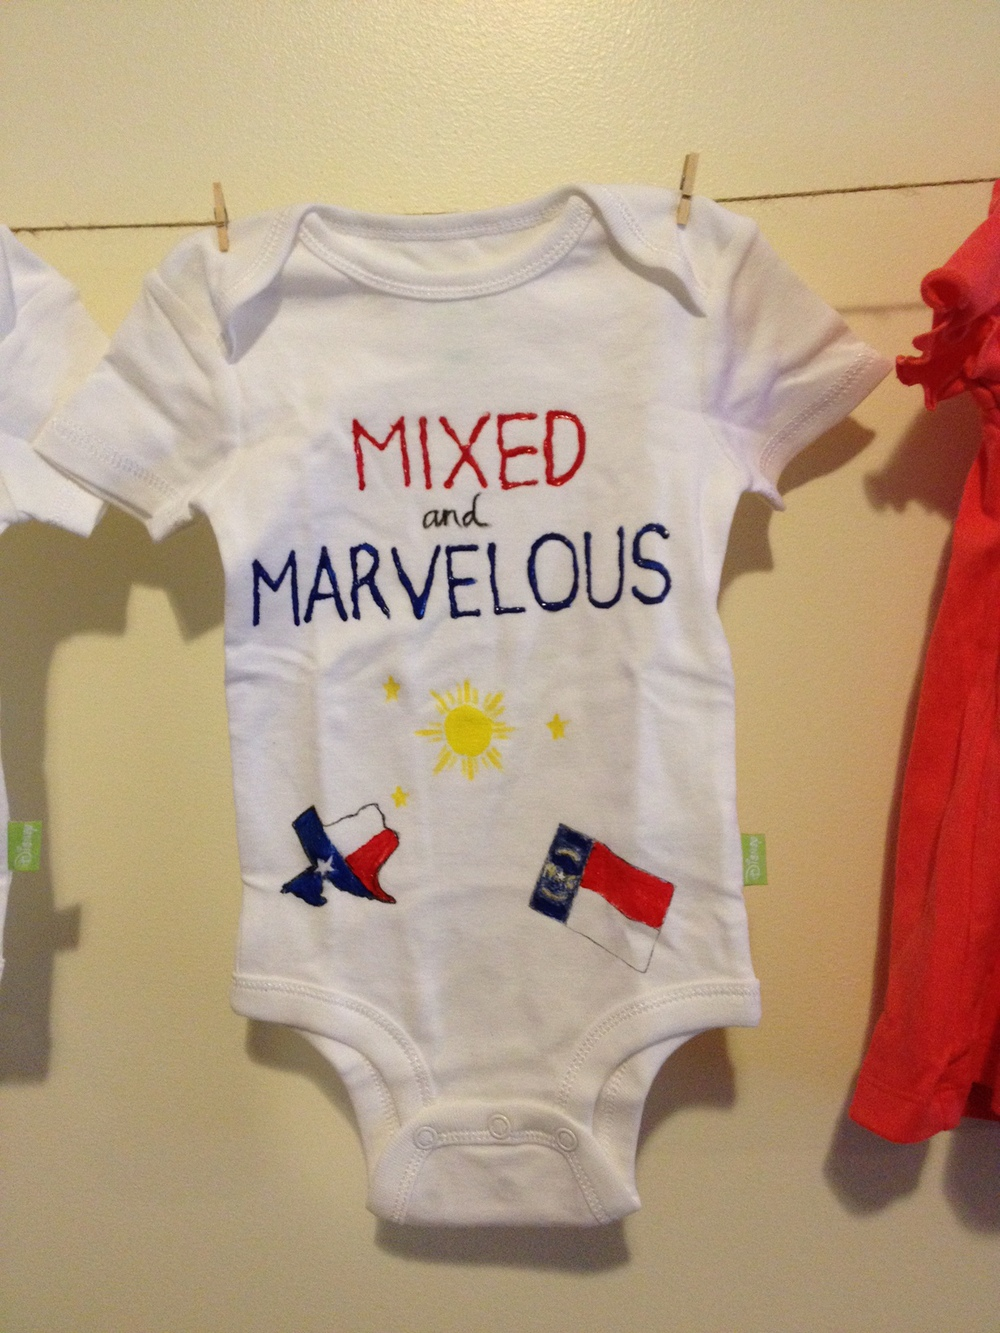 Mixed and Marvelous